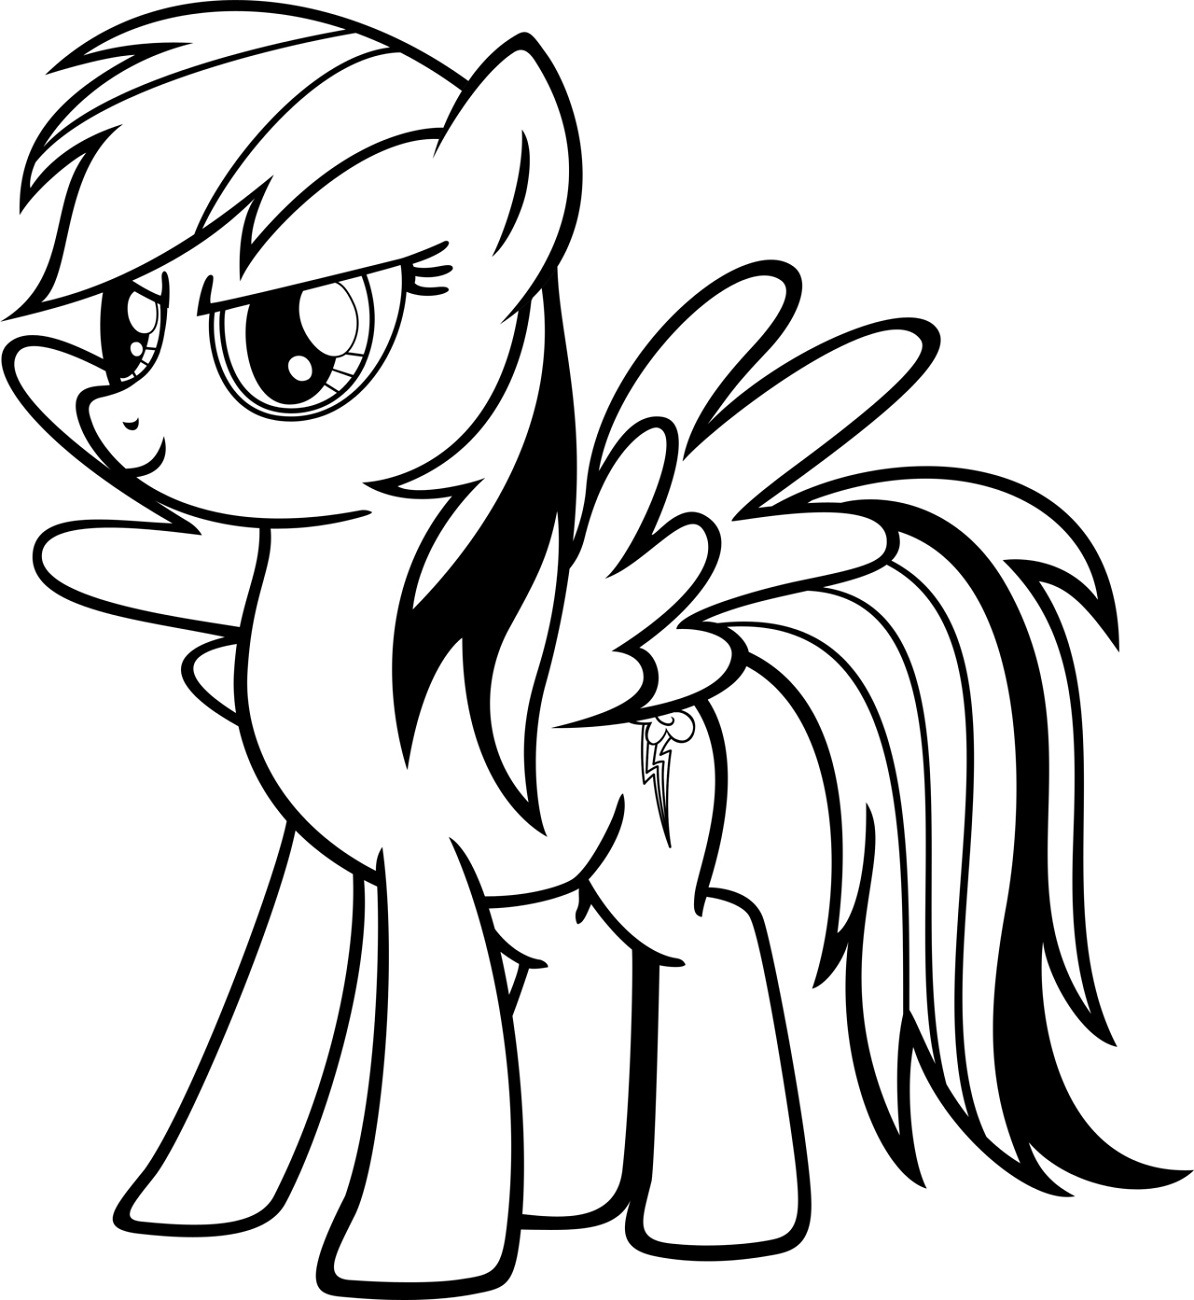 Coloring Pages for Toddlers to Print Dash